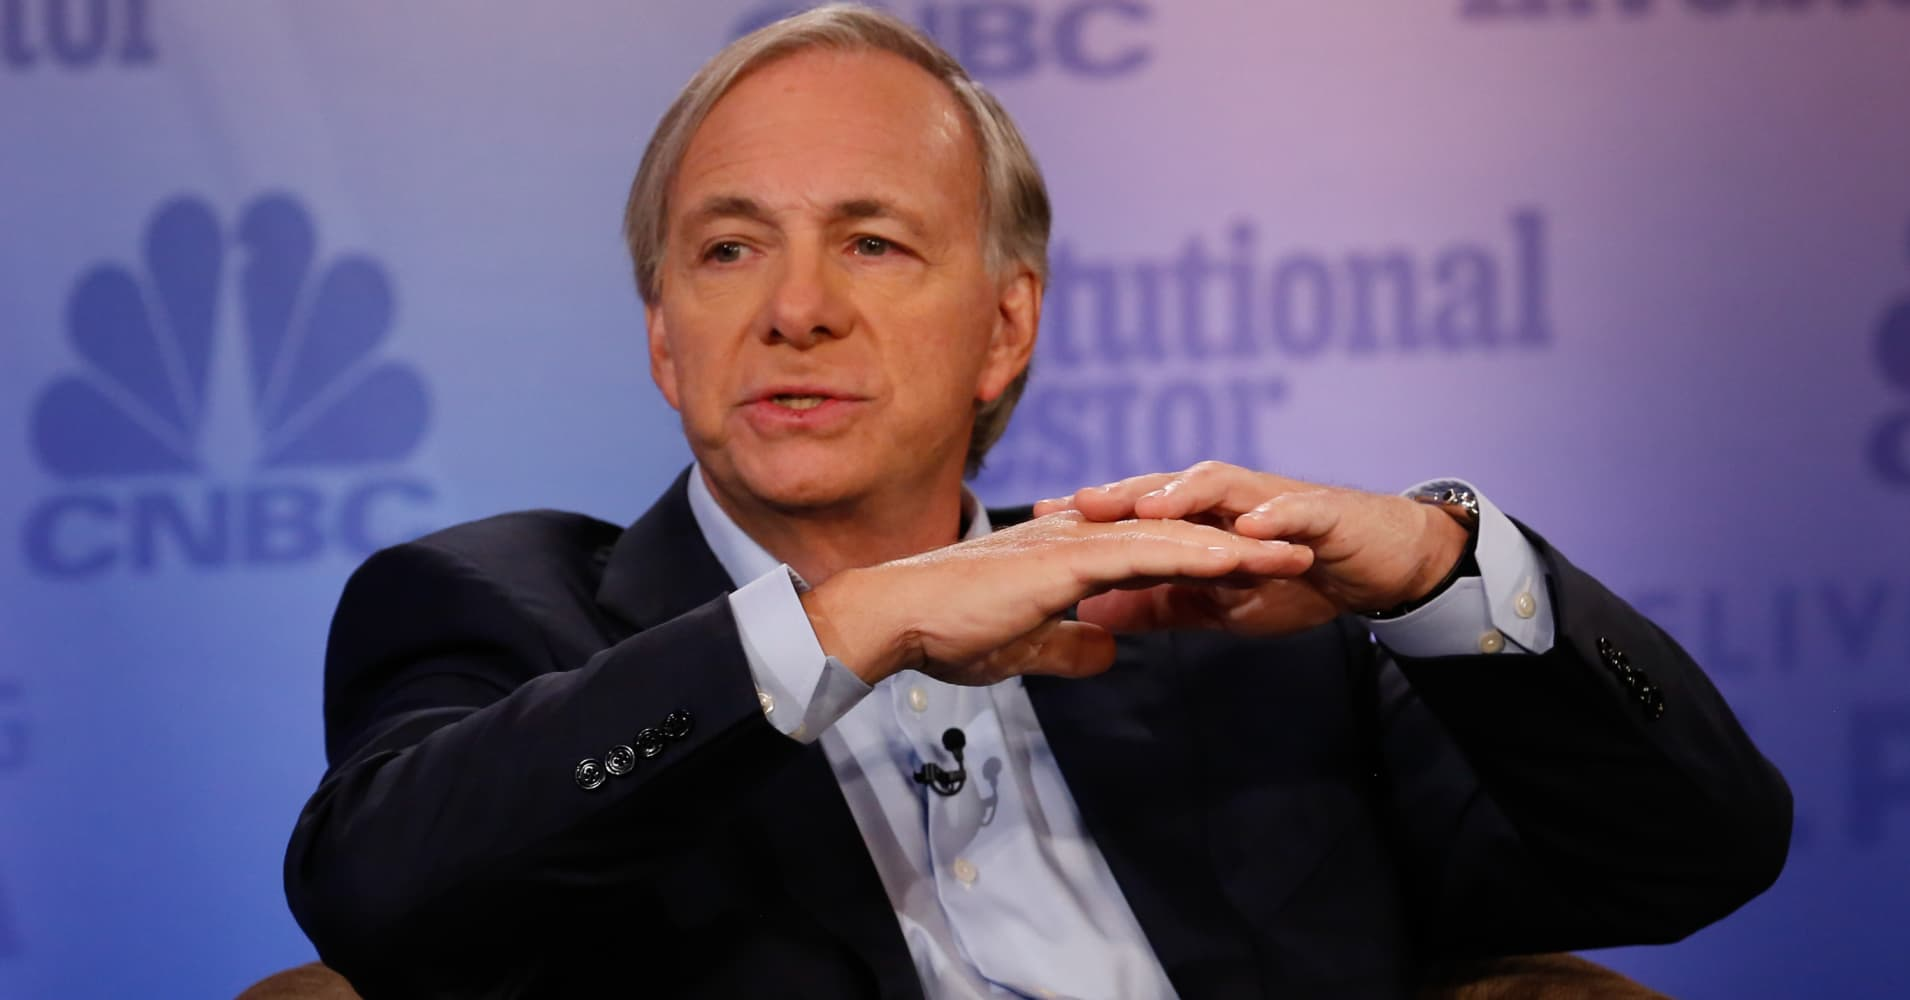 Hedge fund billionaire Ray Dalio: 'Capitalism basically is not working for the majority of people'